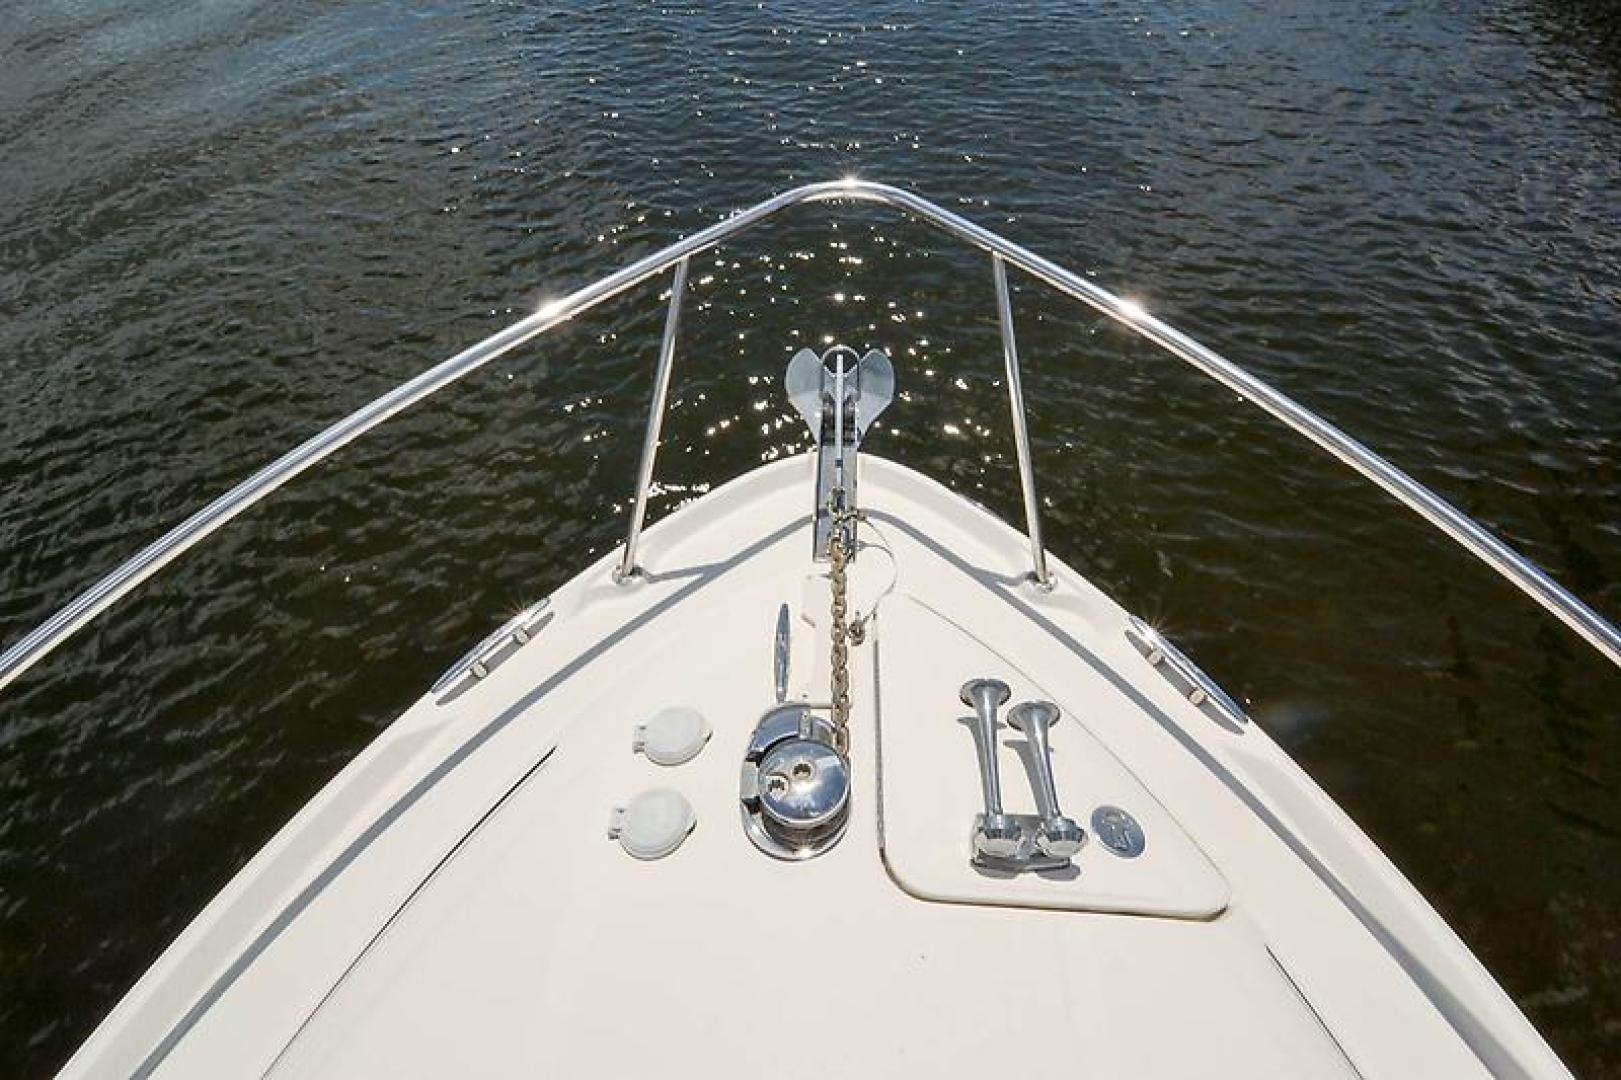 2006 Sea Ray 300 Sundancer-25-2.jpg